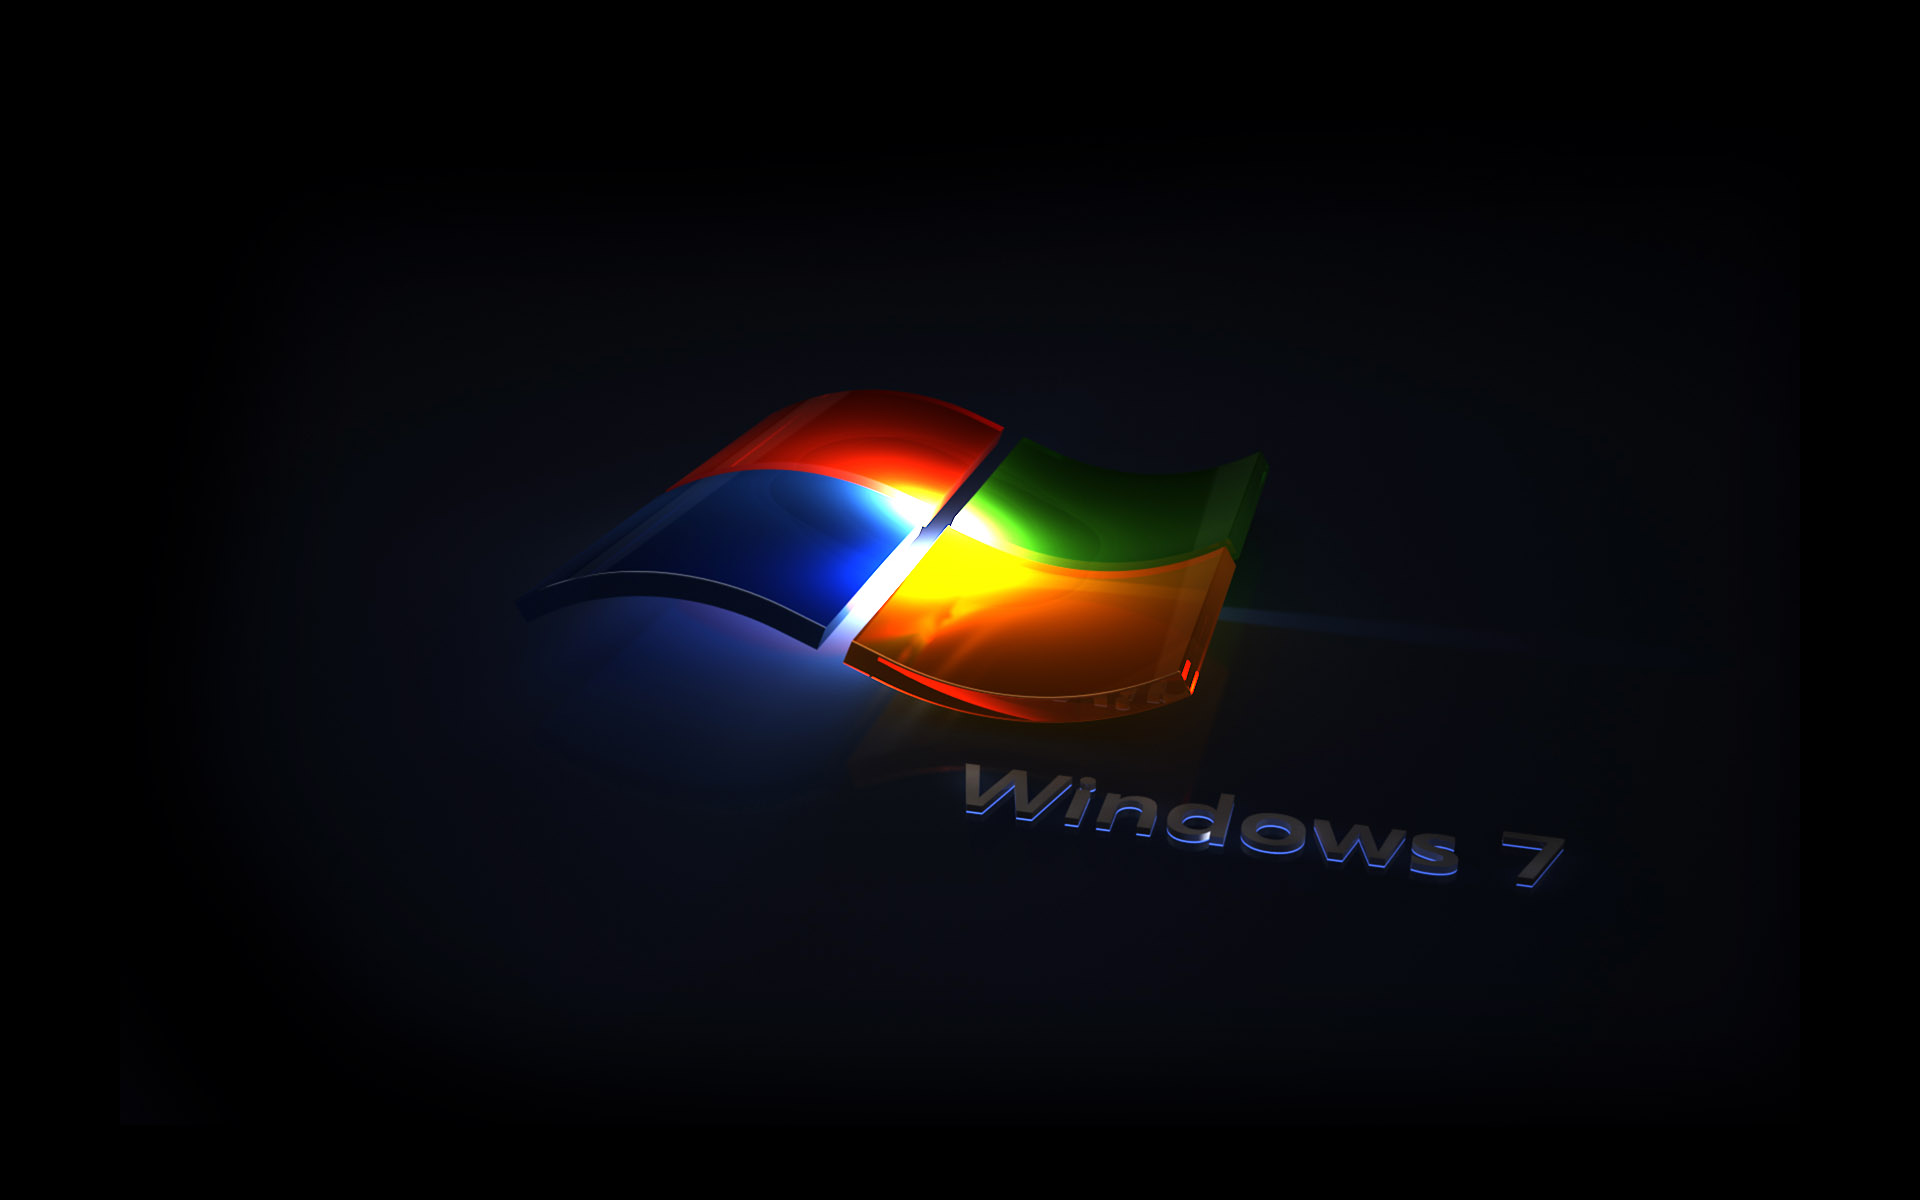 Windows 7 Black Wallpaper Hd 13 High Resolution Wallpaper 1920x1200